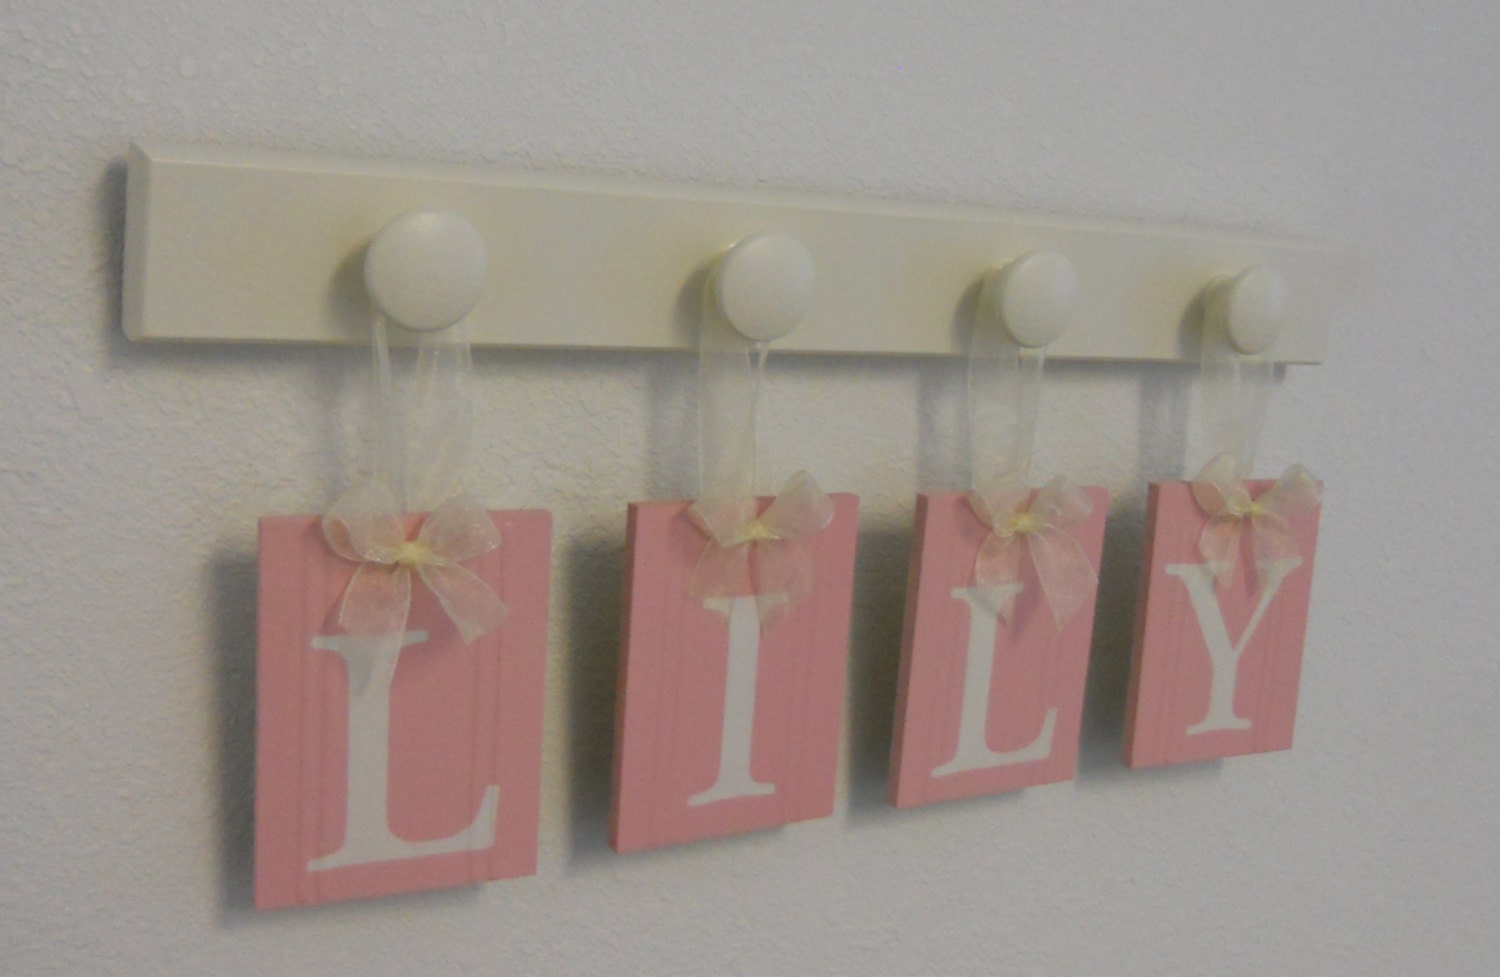 Nursery Wall Hanging Baby Letters On Wall For LILY In Pastel